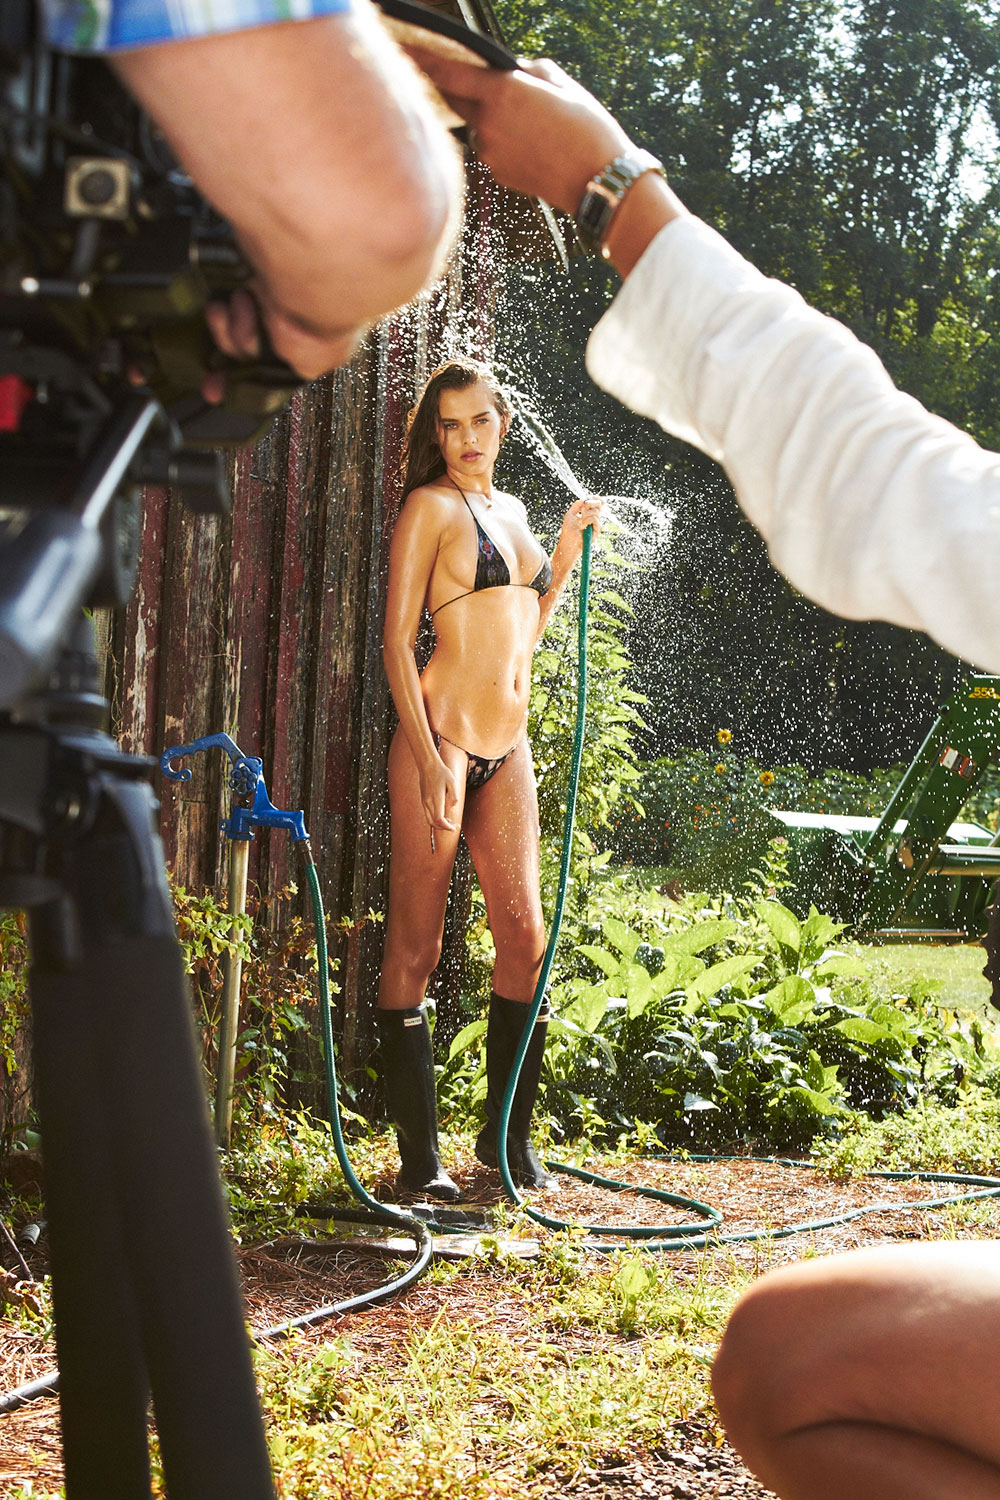 BTS with Solveig at Blackberry Farm, SI Swimsuit 2015